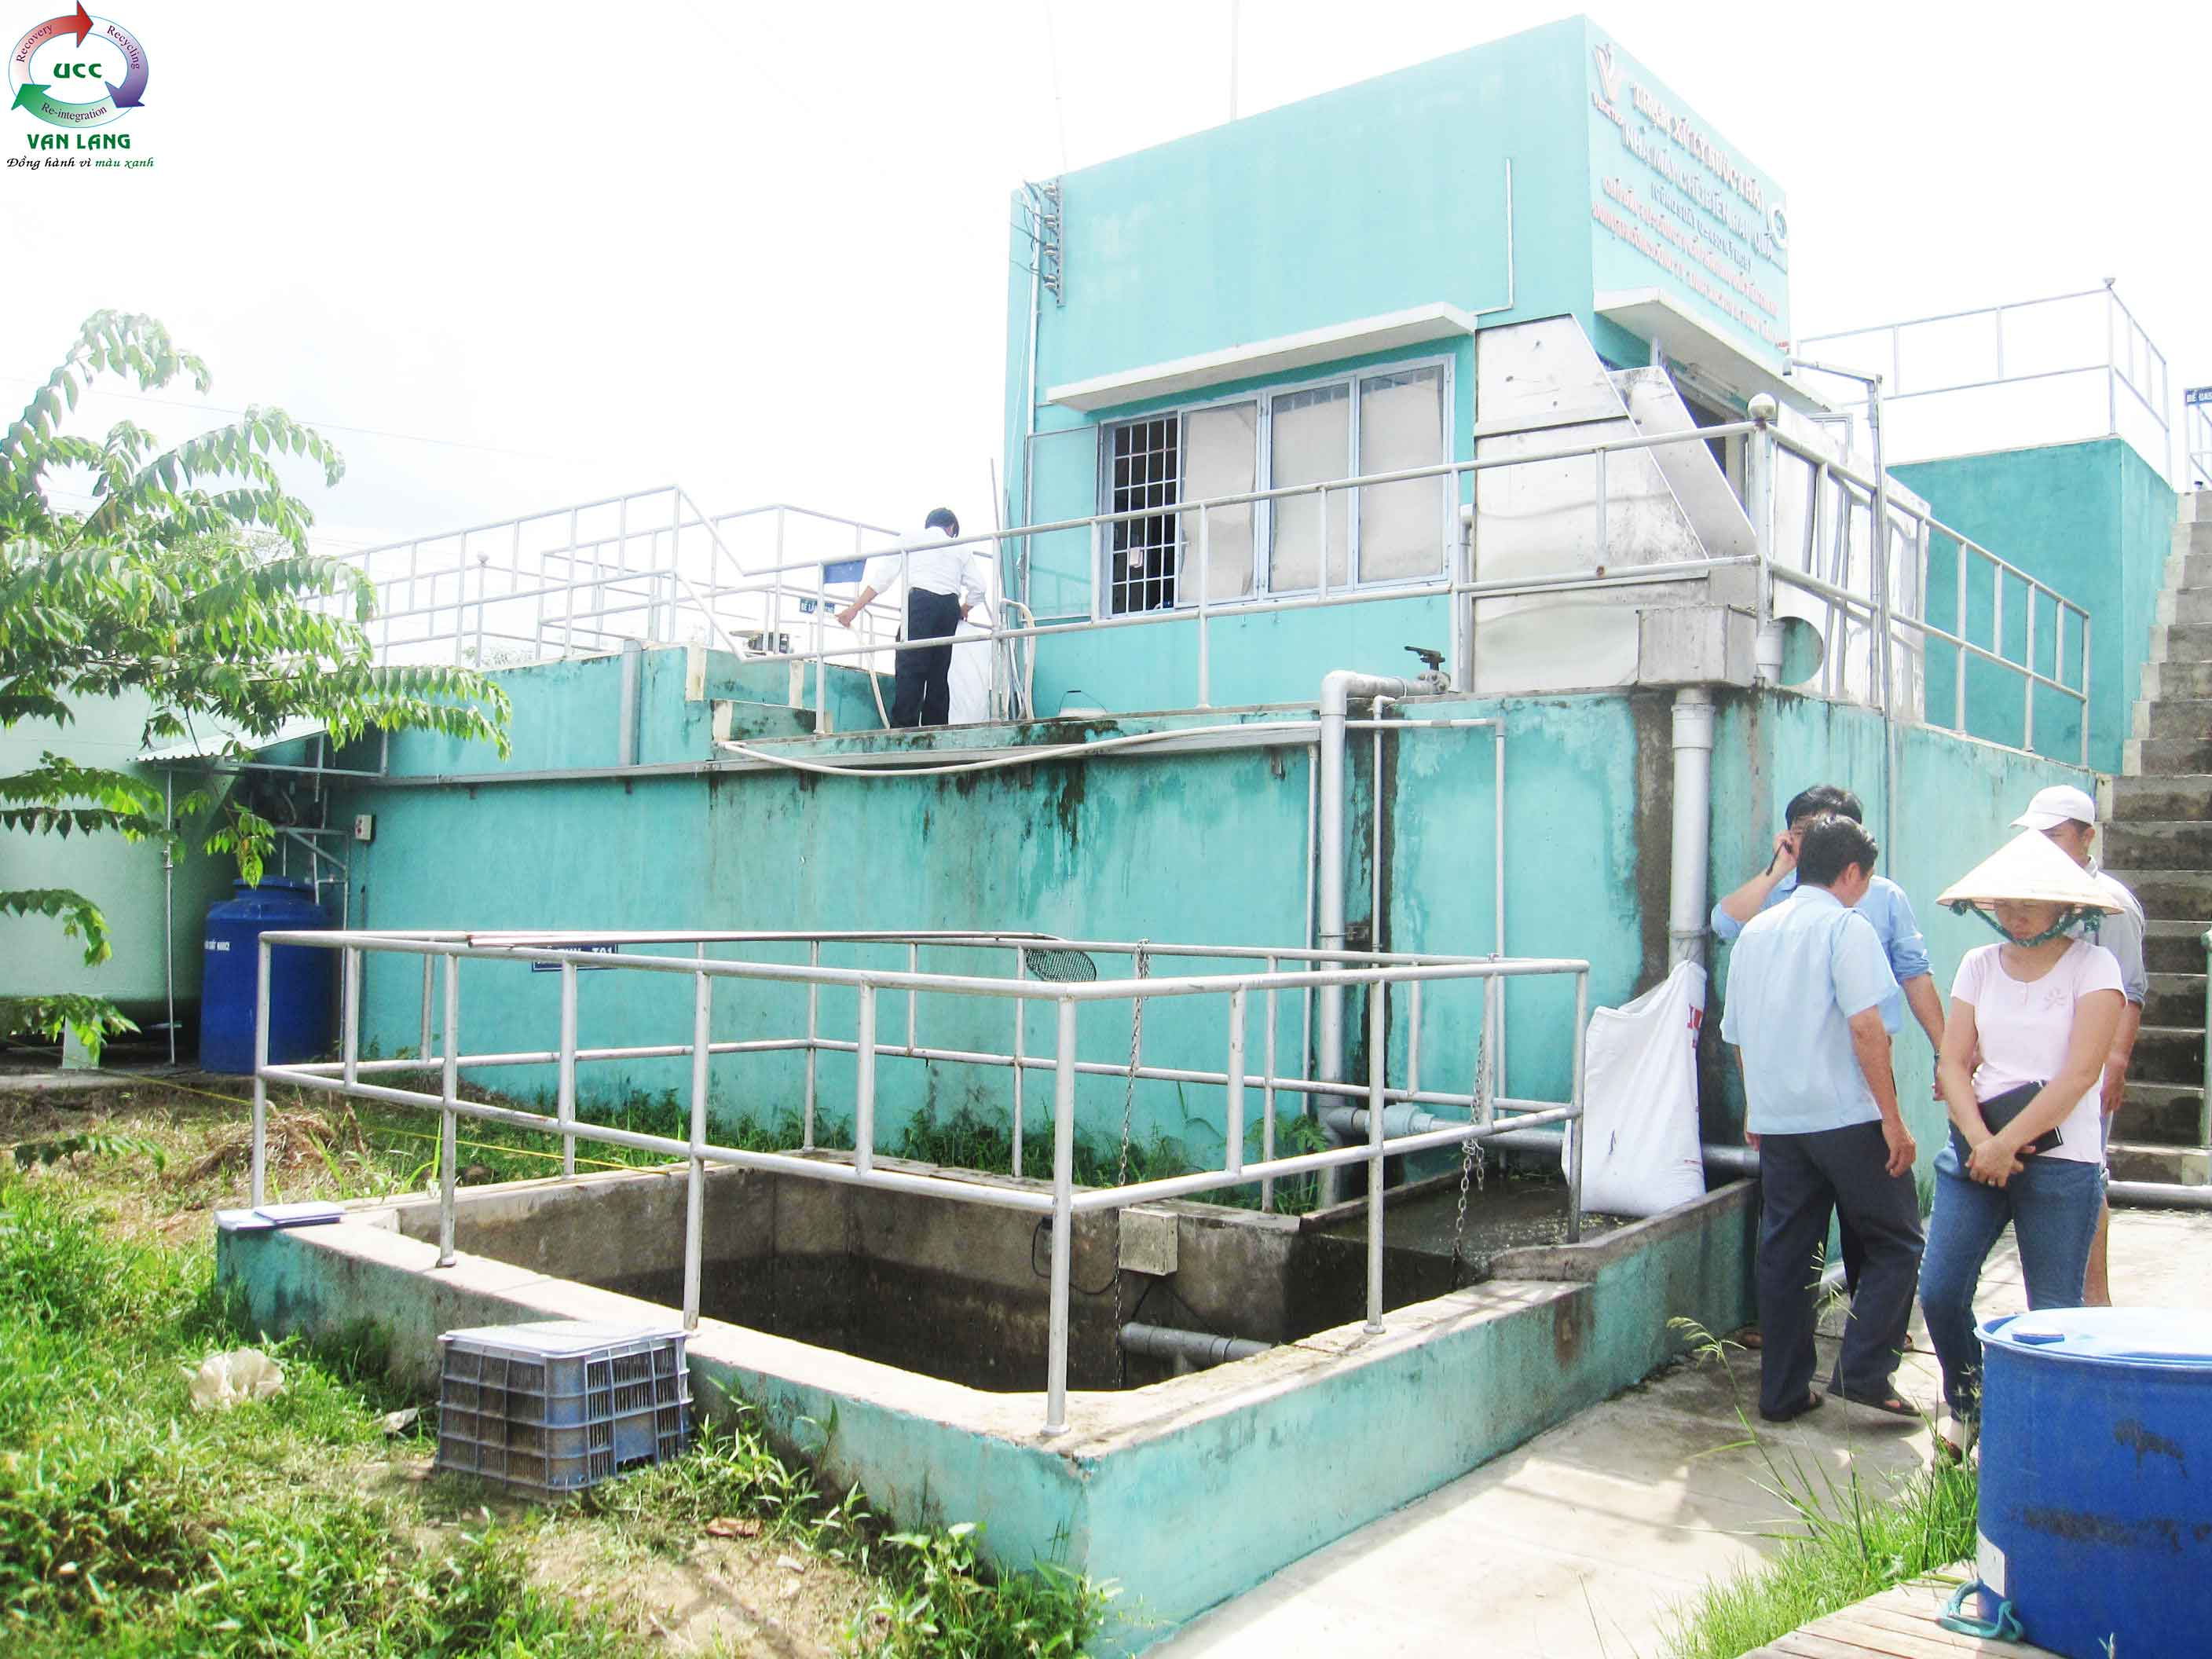 THE WASTEWATER TREATMENT PLANT OF SEAFOOD PROCESSING AND PRESERVATION FACTORY